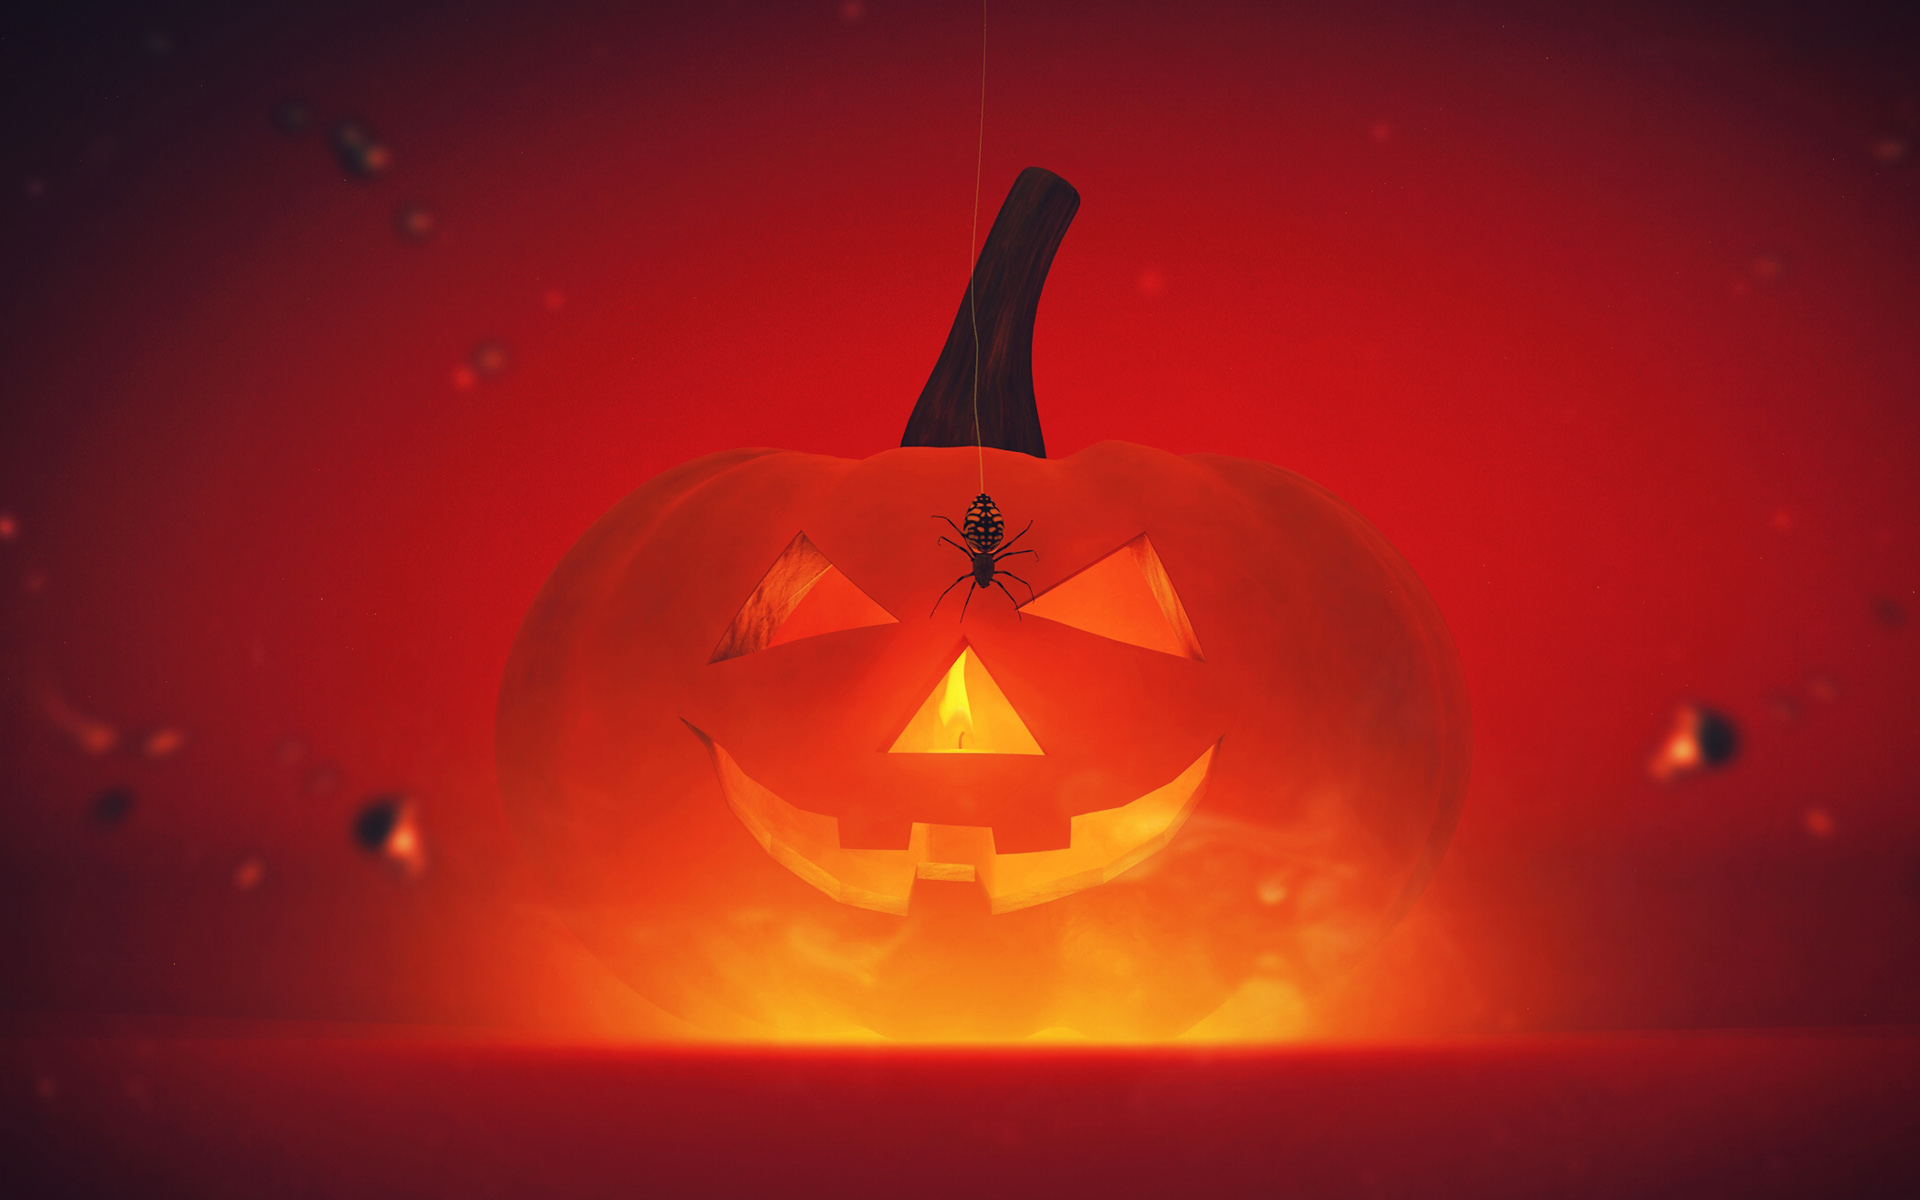 Halloween Jack O Lantern Wallpaper